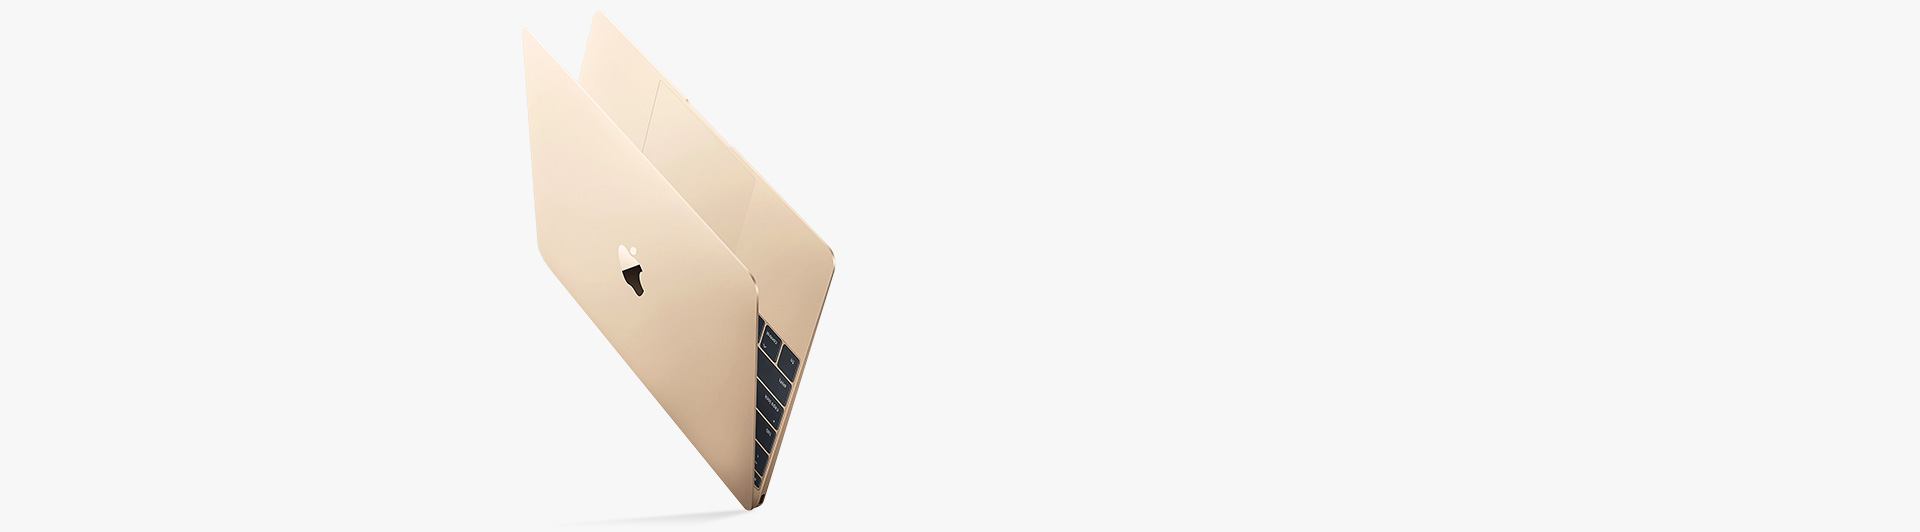 Macbook Pro 12 inch 256GB (2017) Gold sang trọng